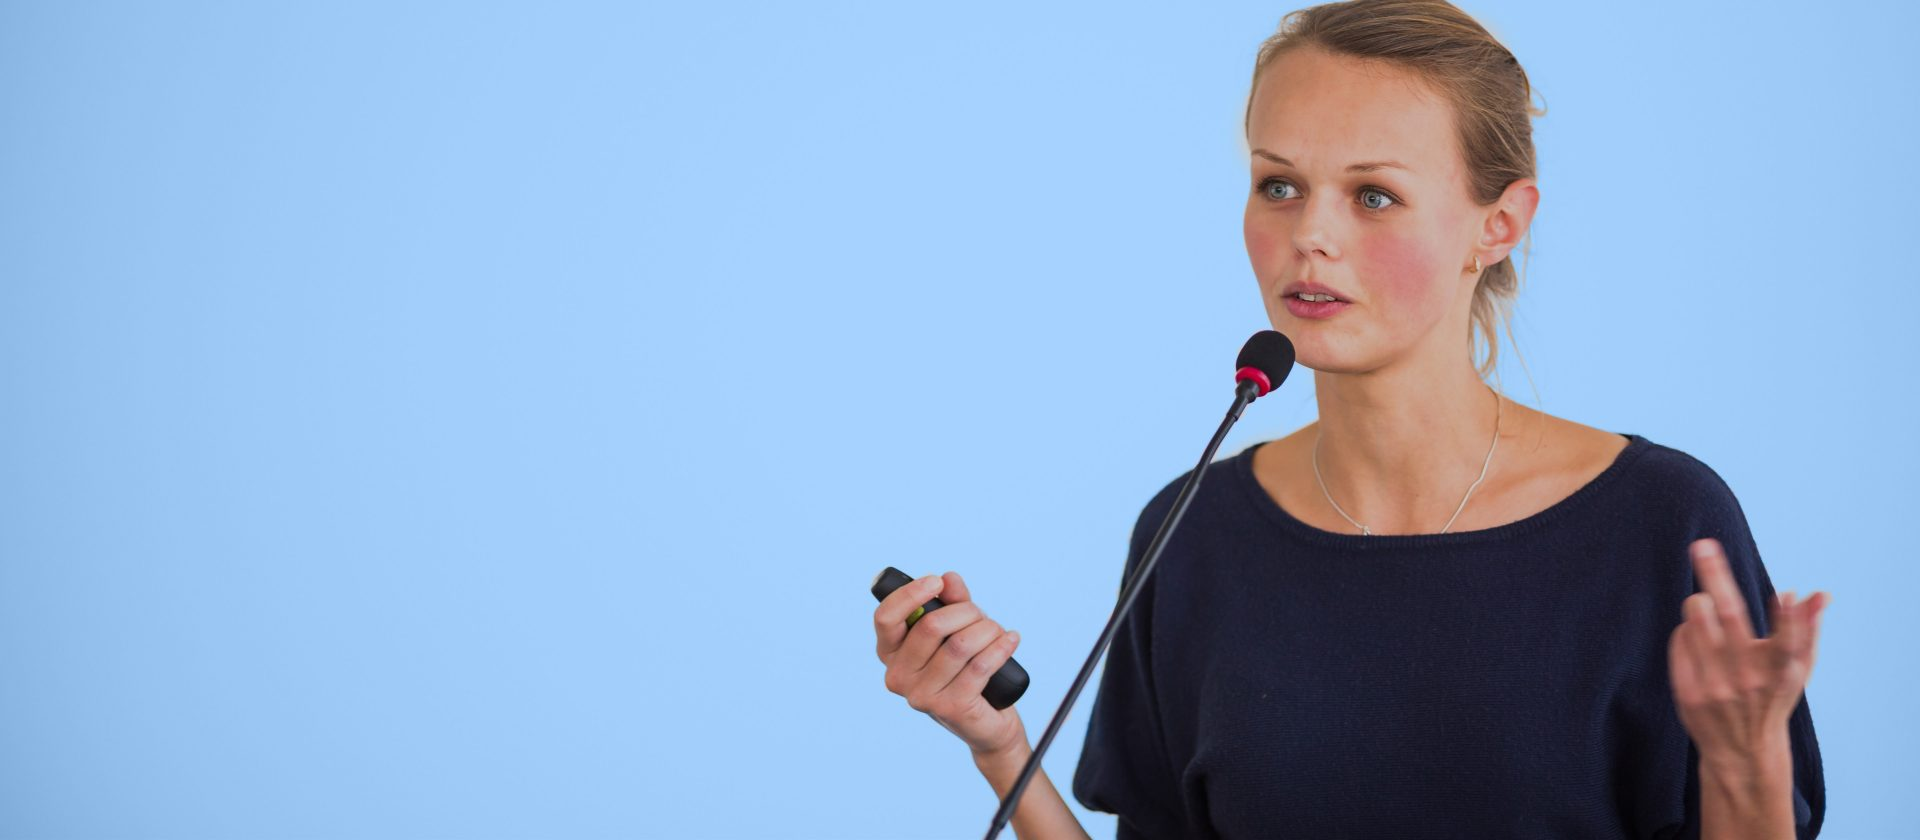 A female speaker standing alone facing the audience